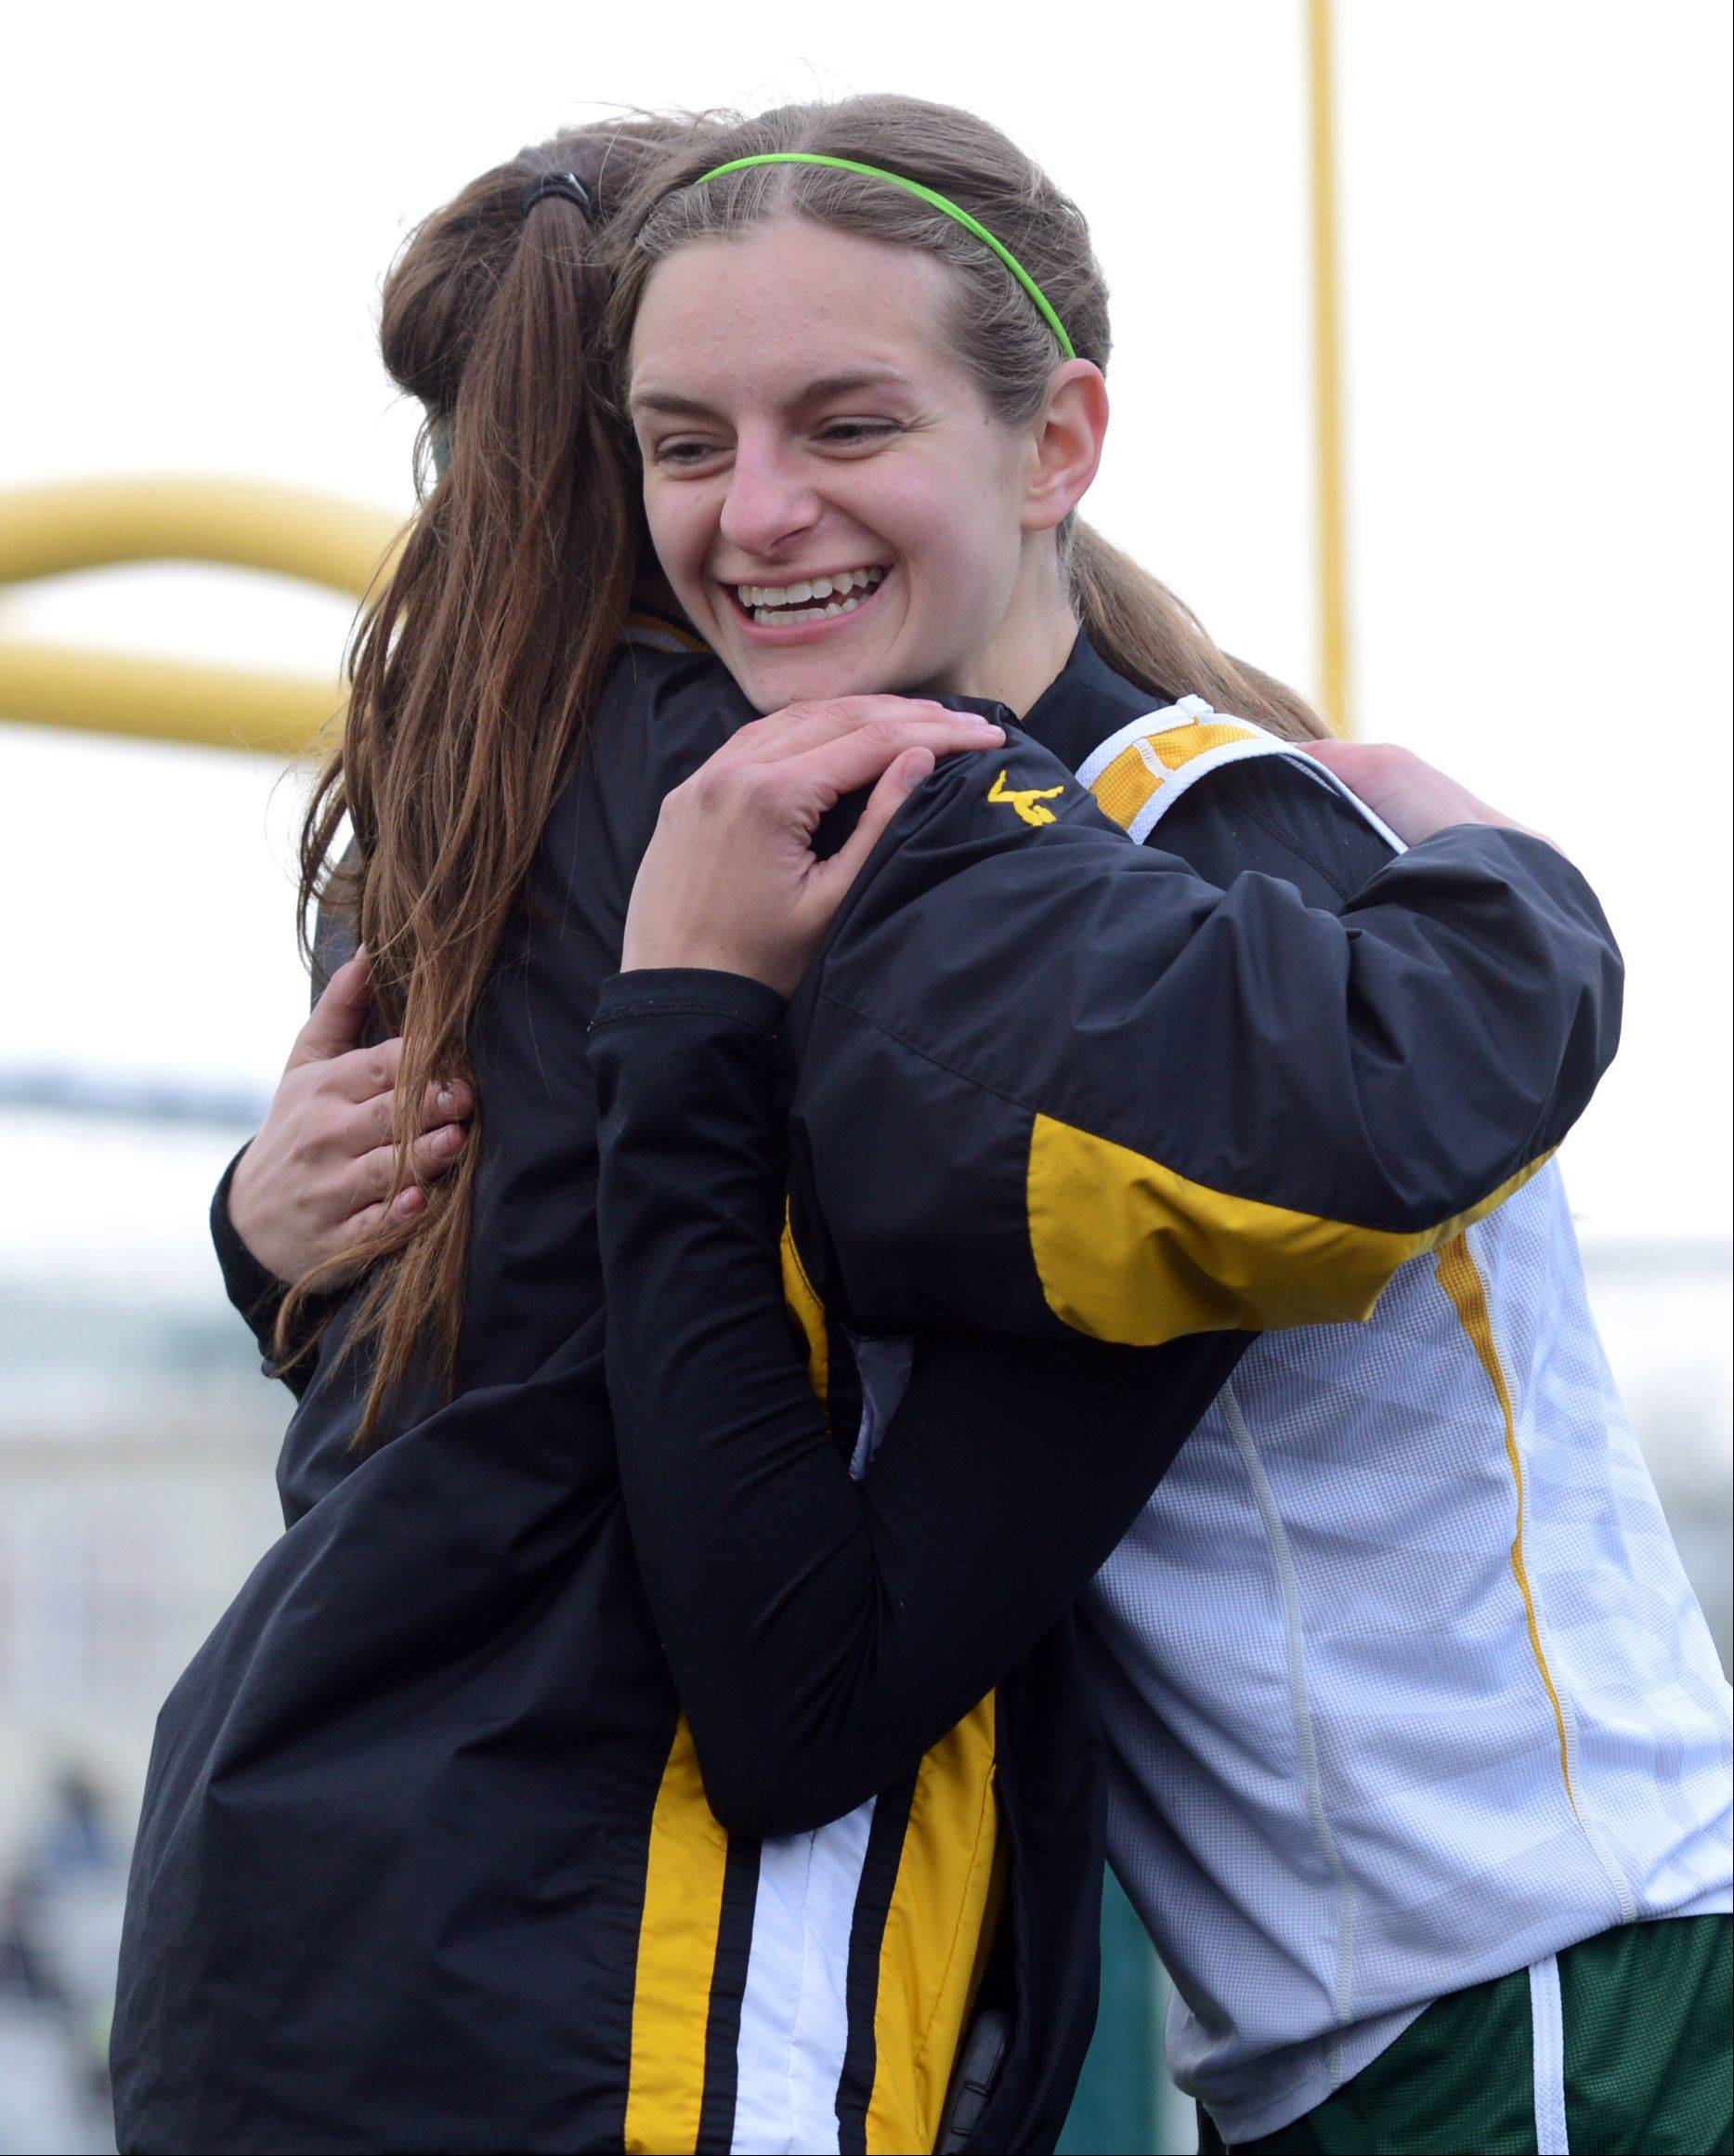 Stevenson high jumper Jackie Setina gets a hug after making one of her jumps during the North Suburban Conference girls track meet Thursday at Stevenson High School in Lincolnshire.